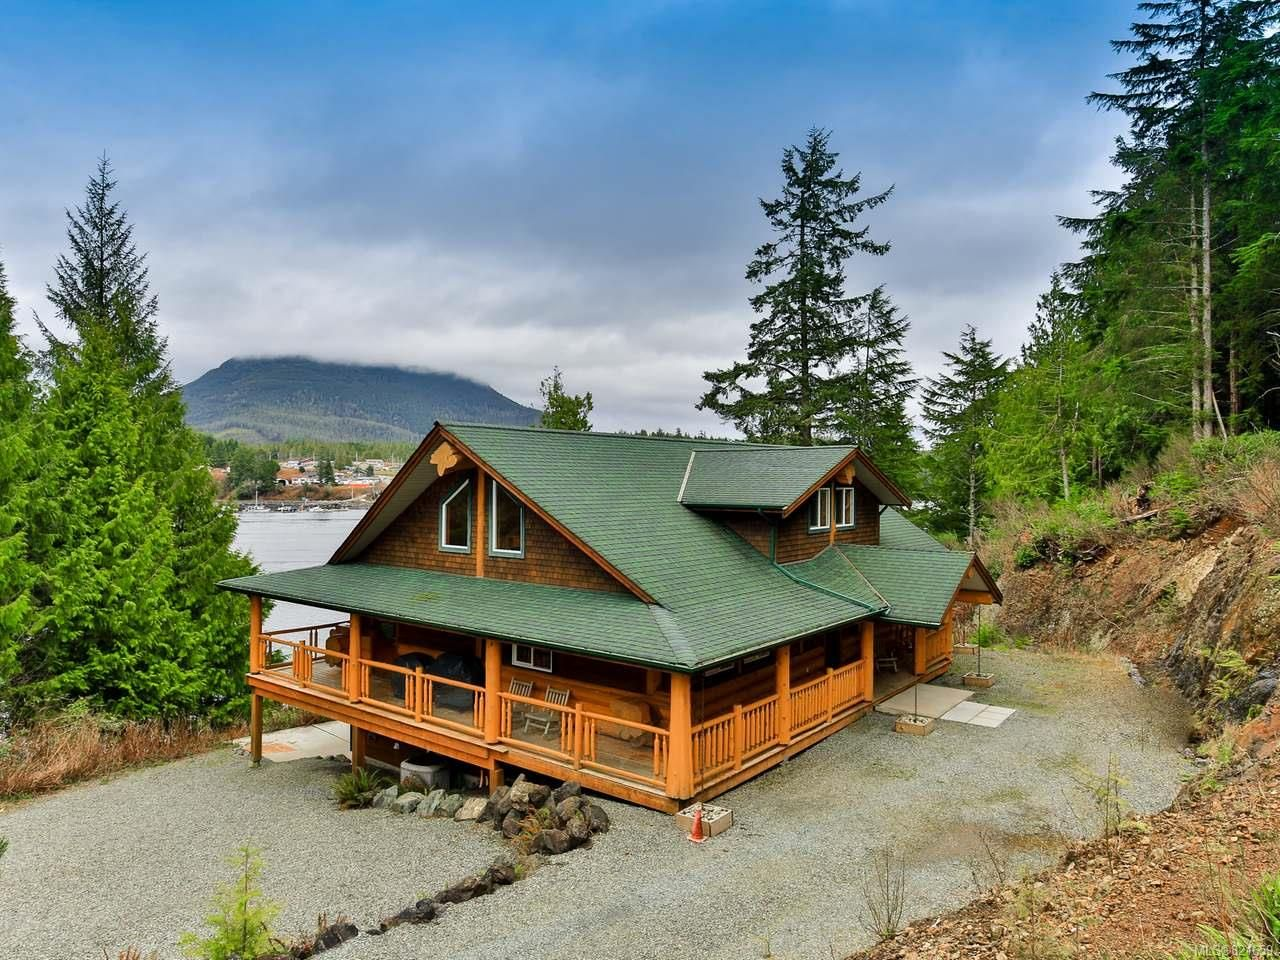 Photo 95: Photos: 1049 Helen Rd in UCLUELET: PA Ucluelet House for sale (Port Alberni)  : MLS®# 821659